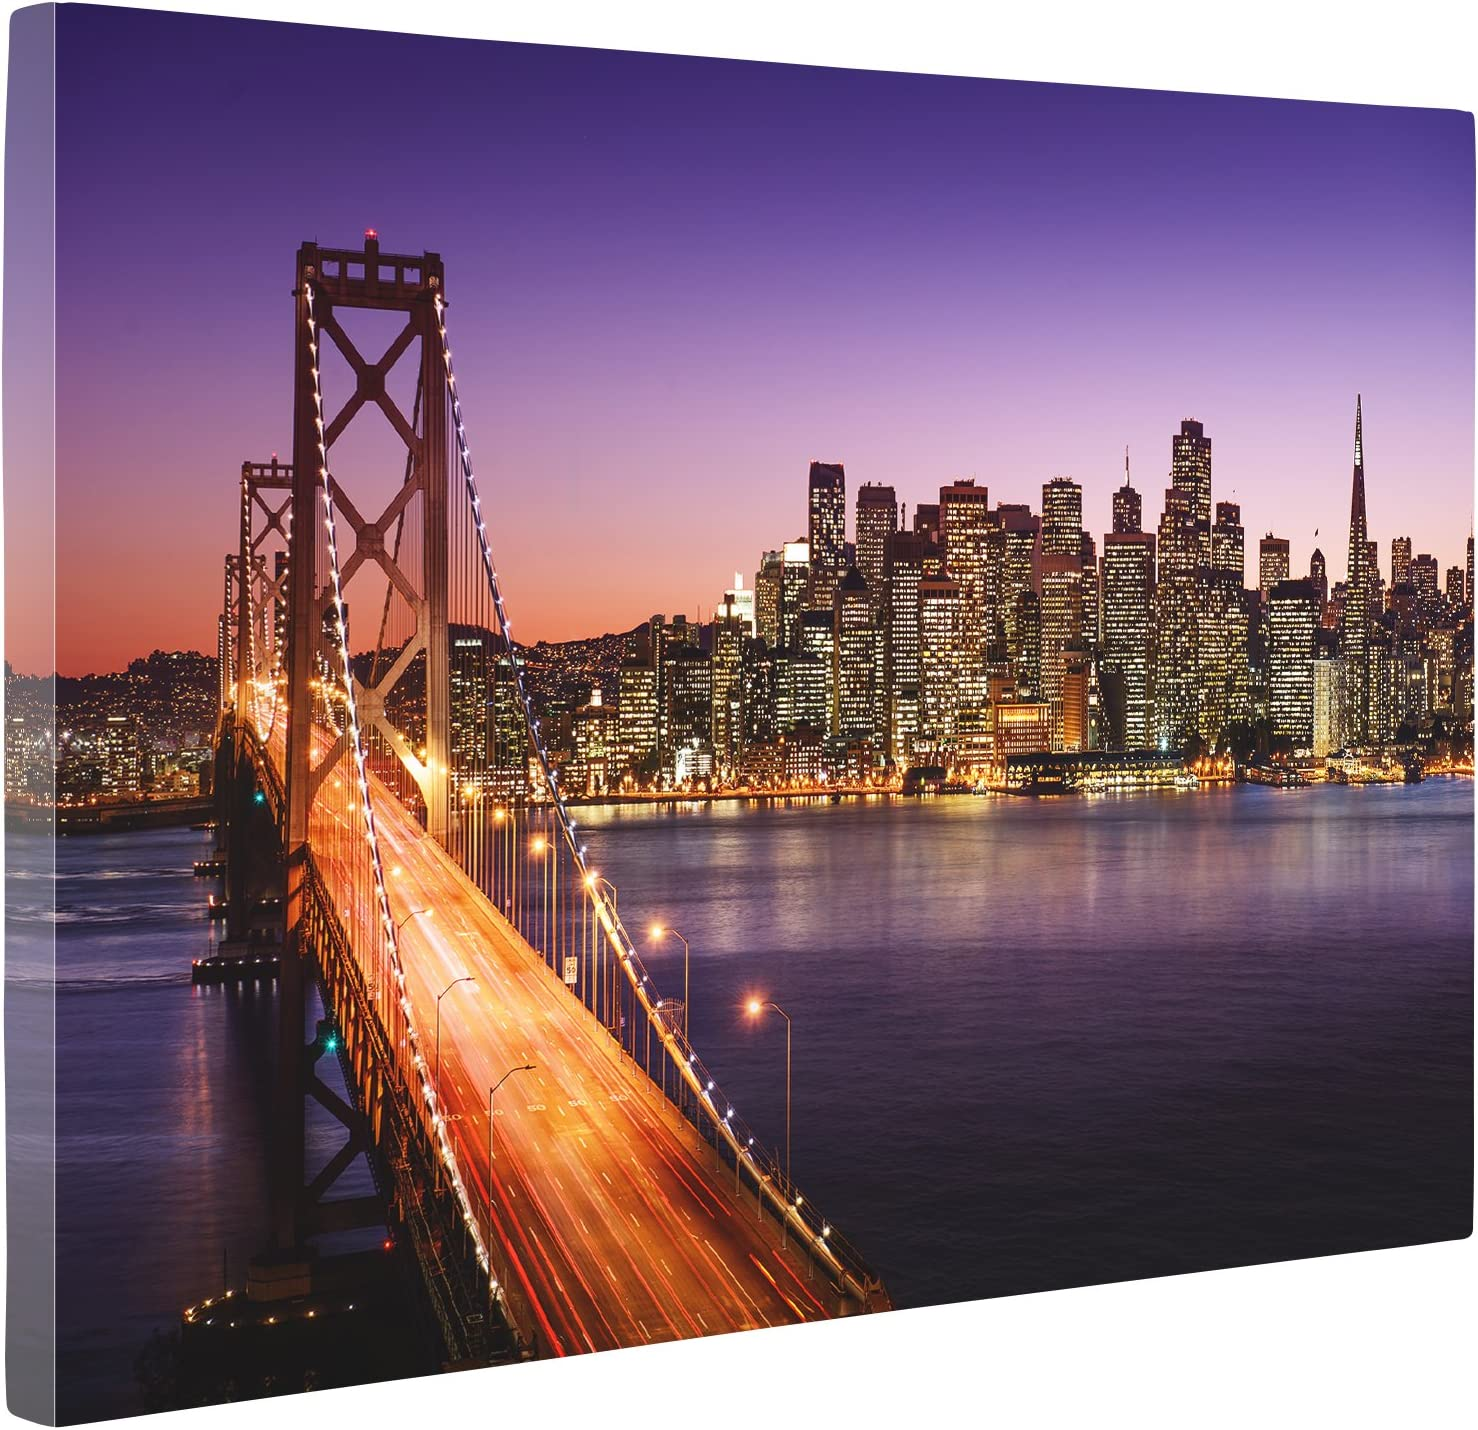 """Niwo Art (TM - San Francisco Cityscape Picture On Canvas - Giclee Wall Art for Home Decor, Gallery Wrapped, Stretched and Framed Ready to Hang (16""""x12""""x0.75"""")"""